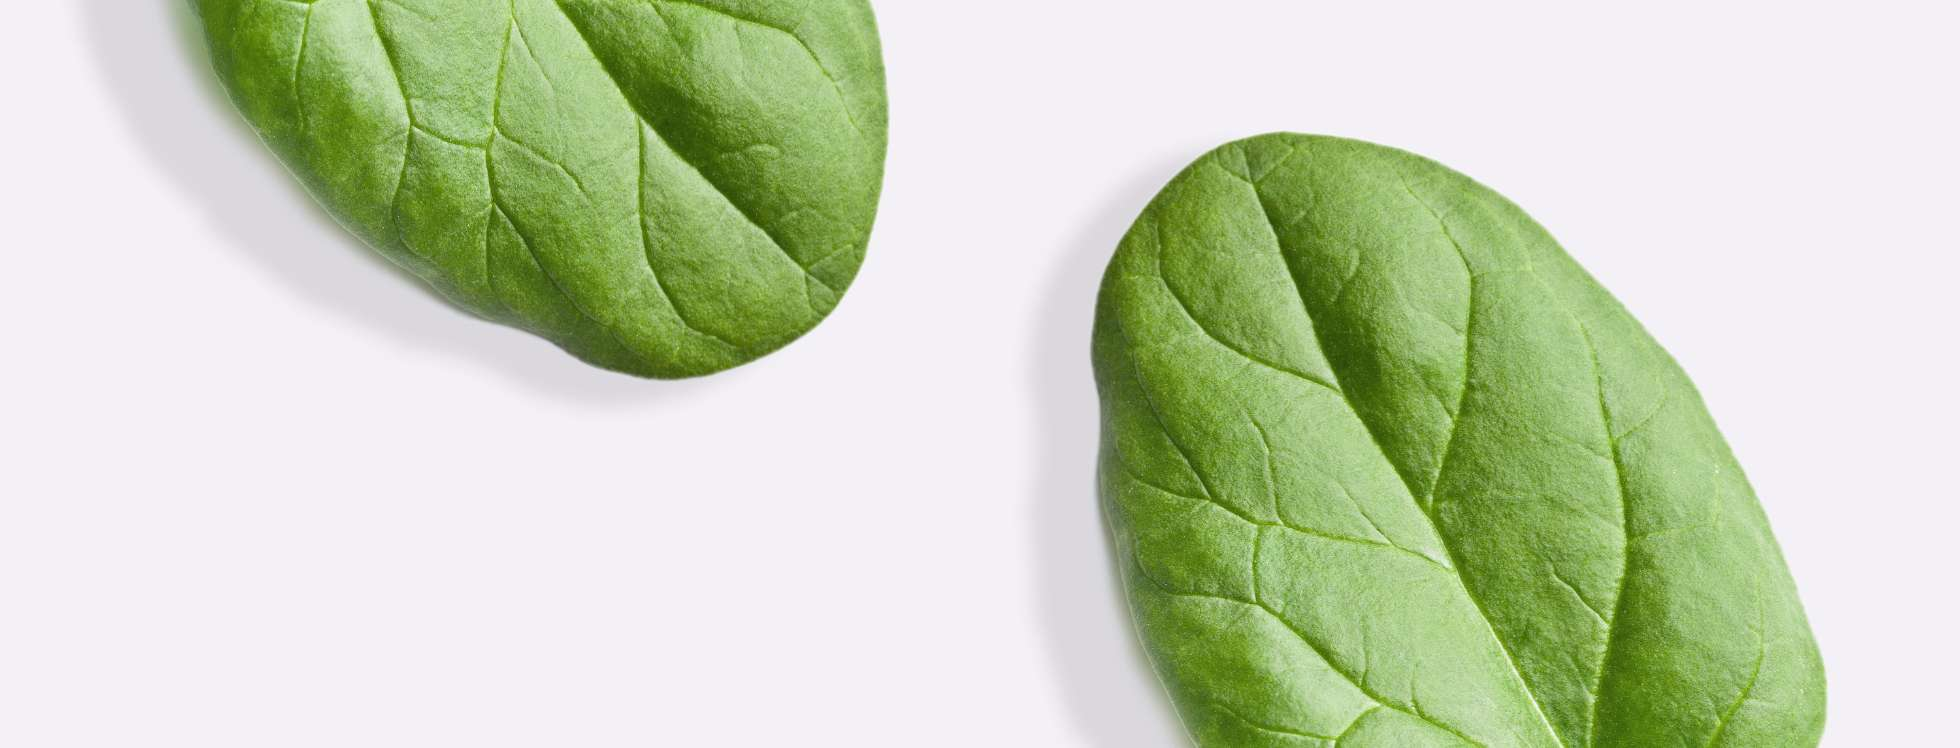 Spinach leaves on gray background